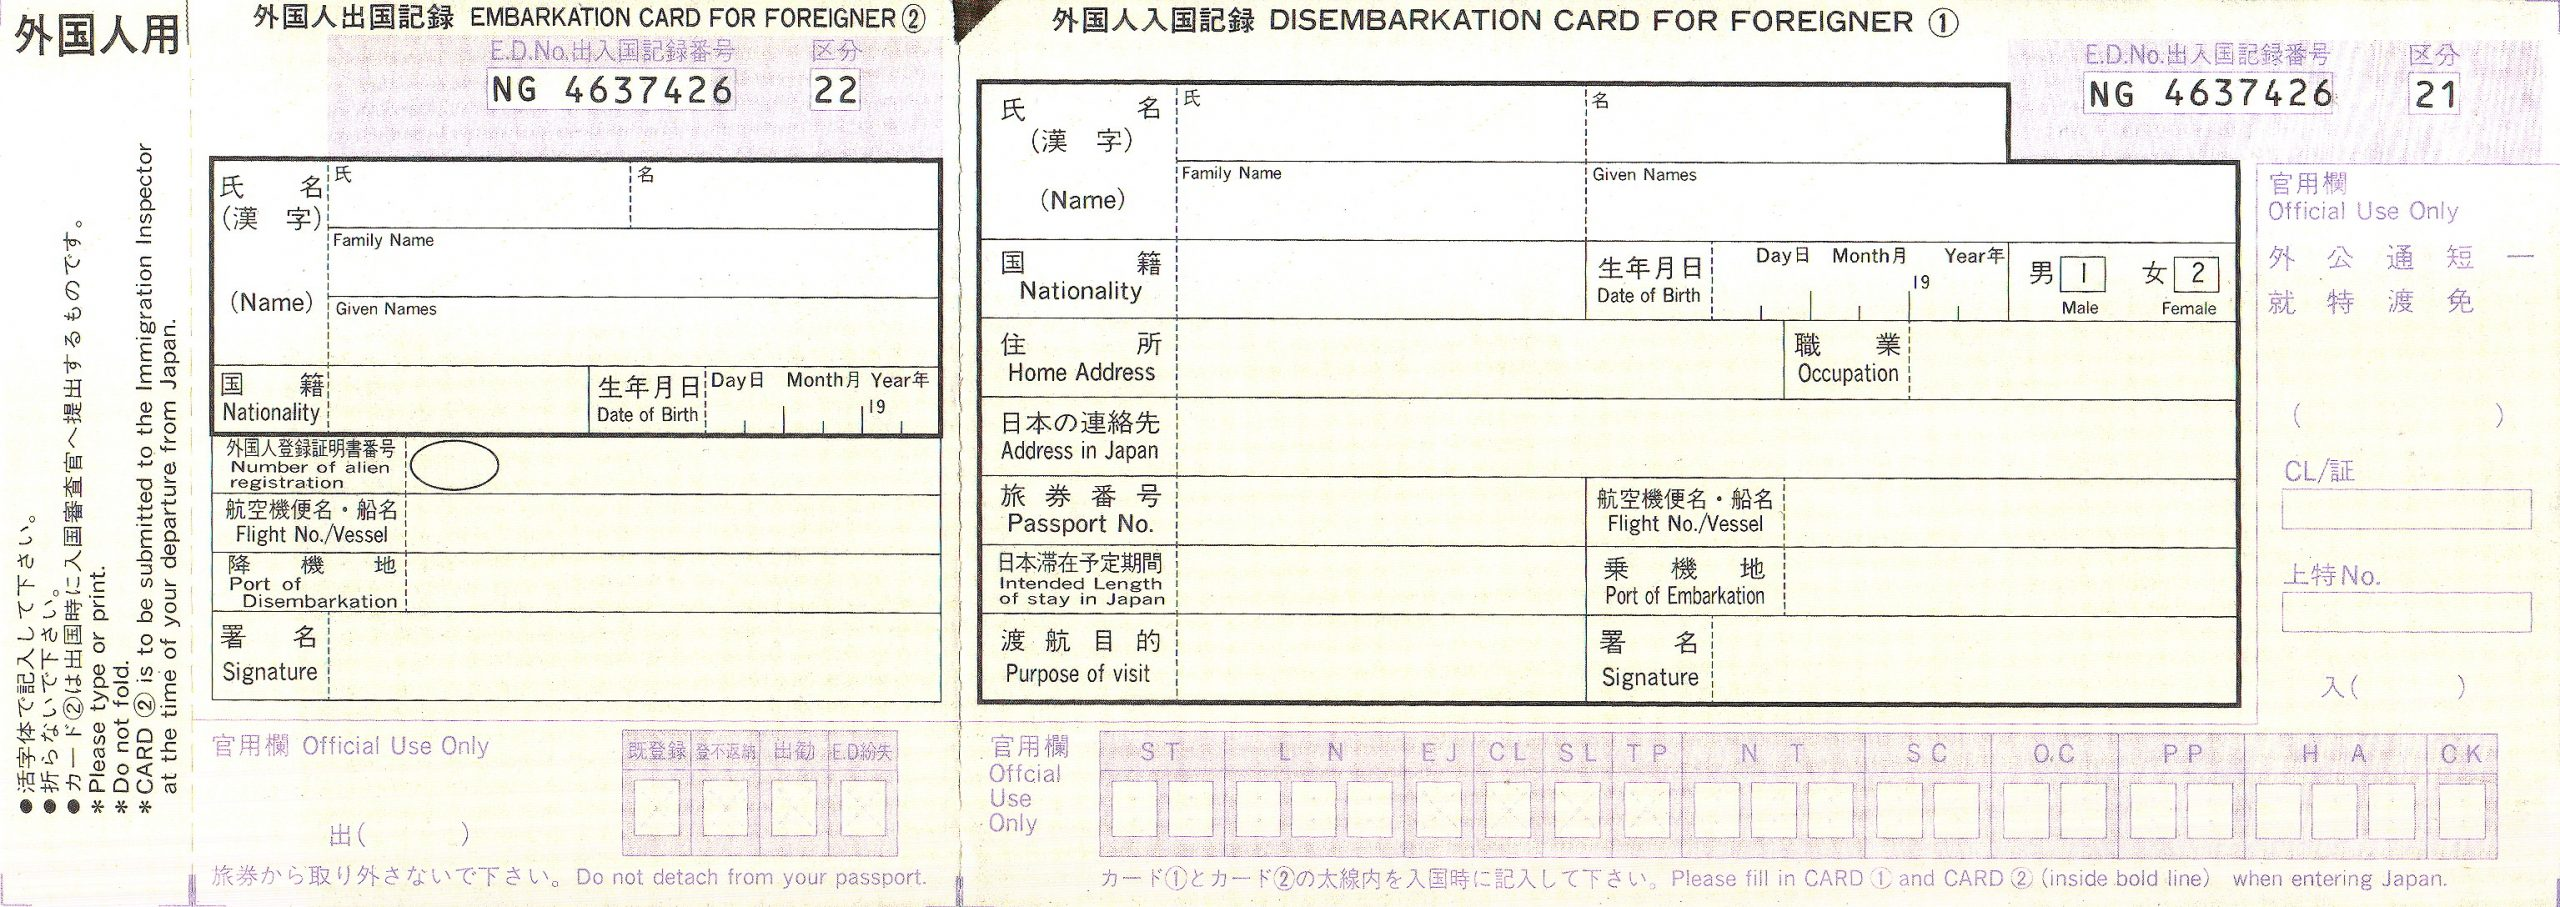 Japanese immigration card for foreigners